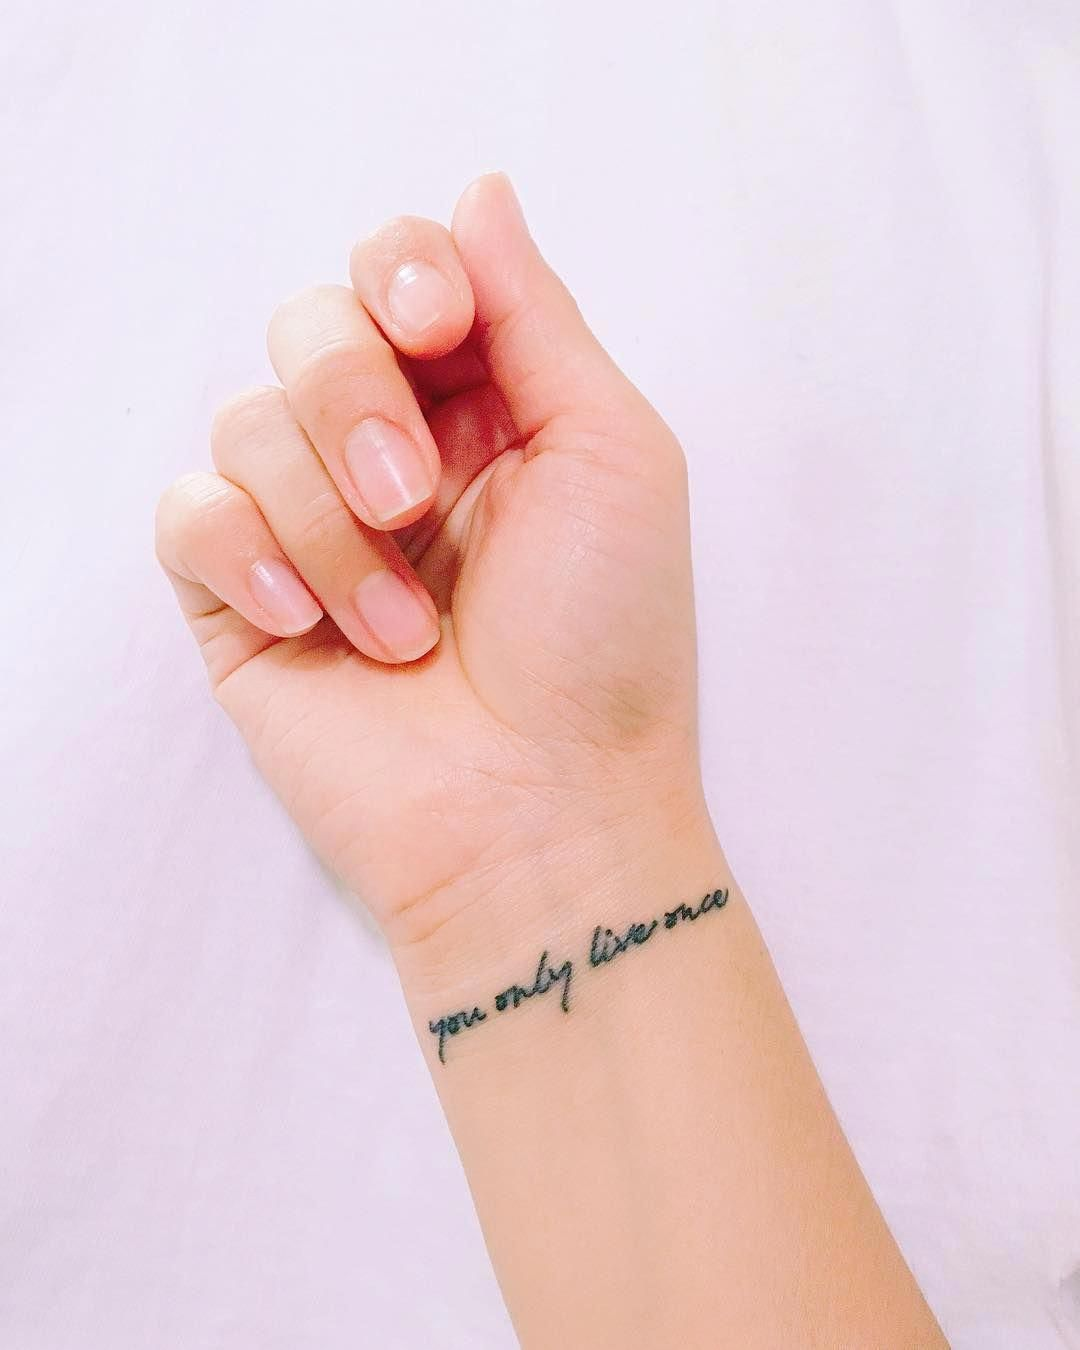 Inspiring Quote Tattoos Popsugar Smart Living